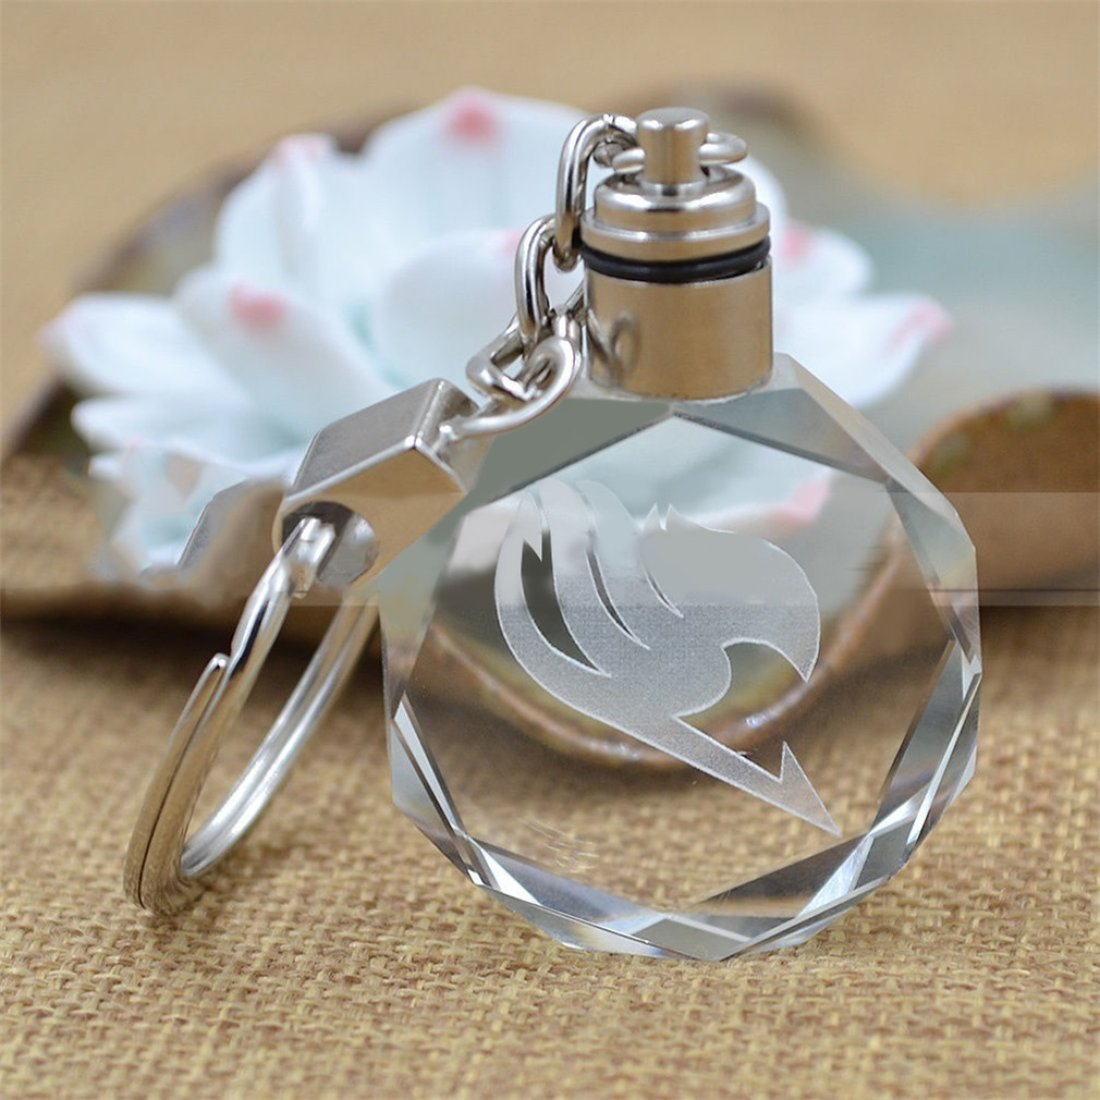 Women Fairy Tail Popular Anime Crystal LED Light Charm Key Chain Key Ring Cosplay Gifts for Friends Accessory Formulaone